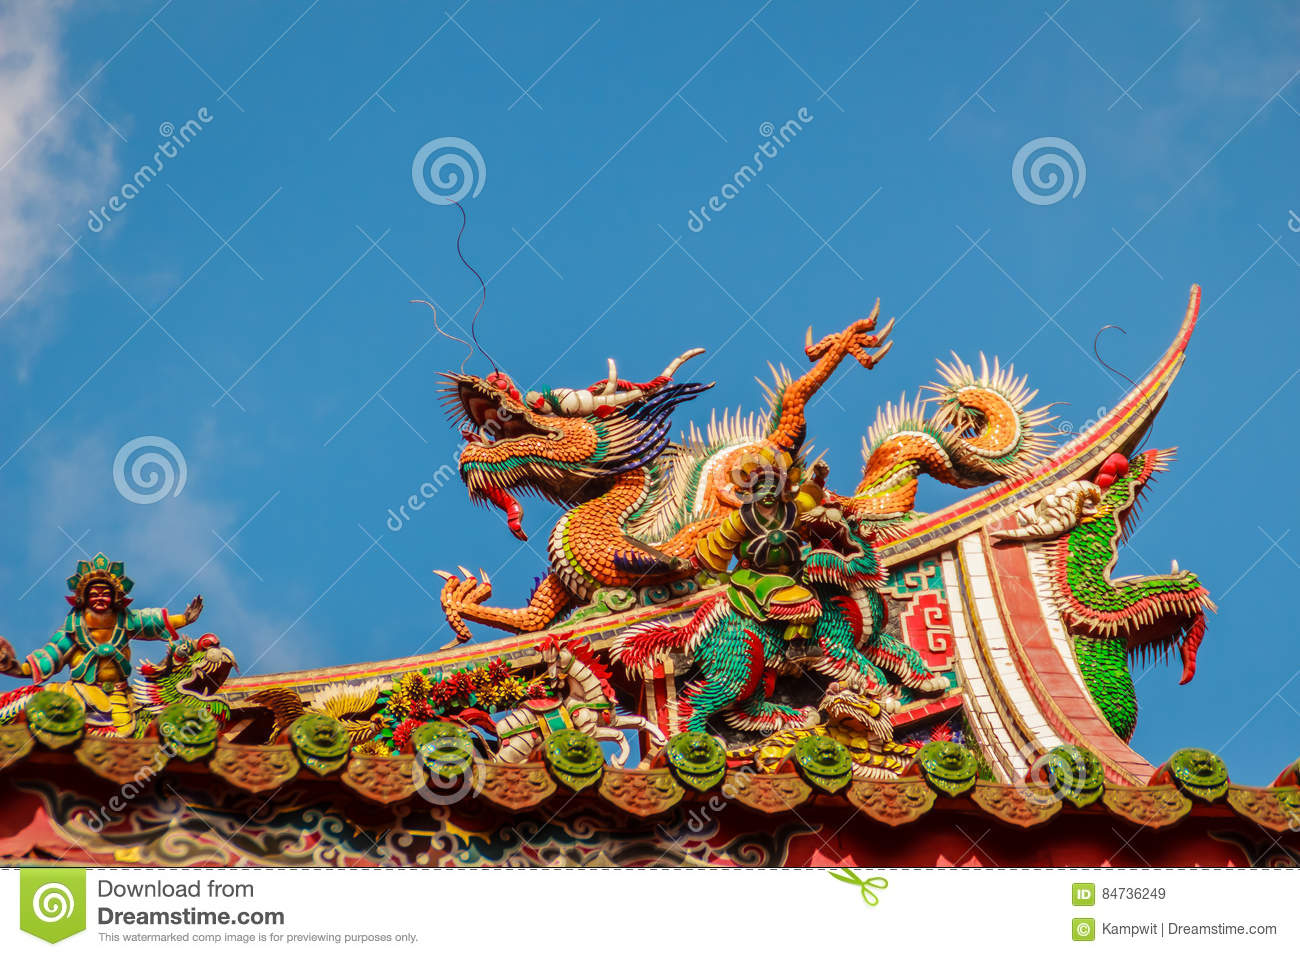 Beautiful Chinese dragon sculpture on the roof at Lungshan Temple of Manka, Buddhist temple in Wanhua District, Taipei, Taiwan.